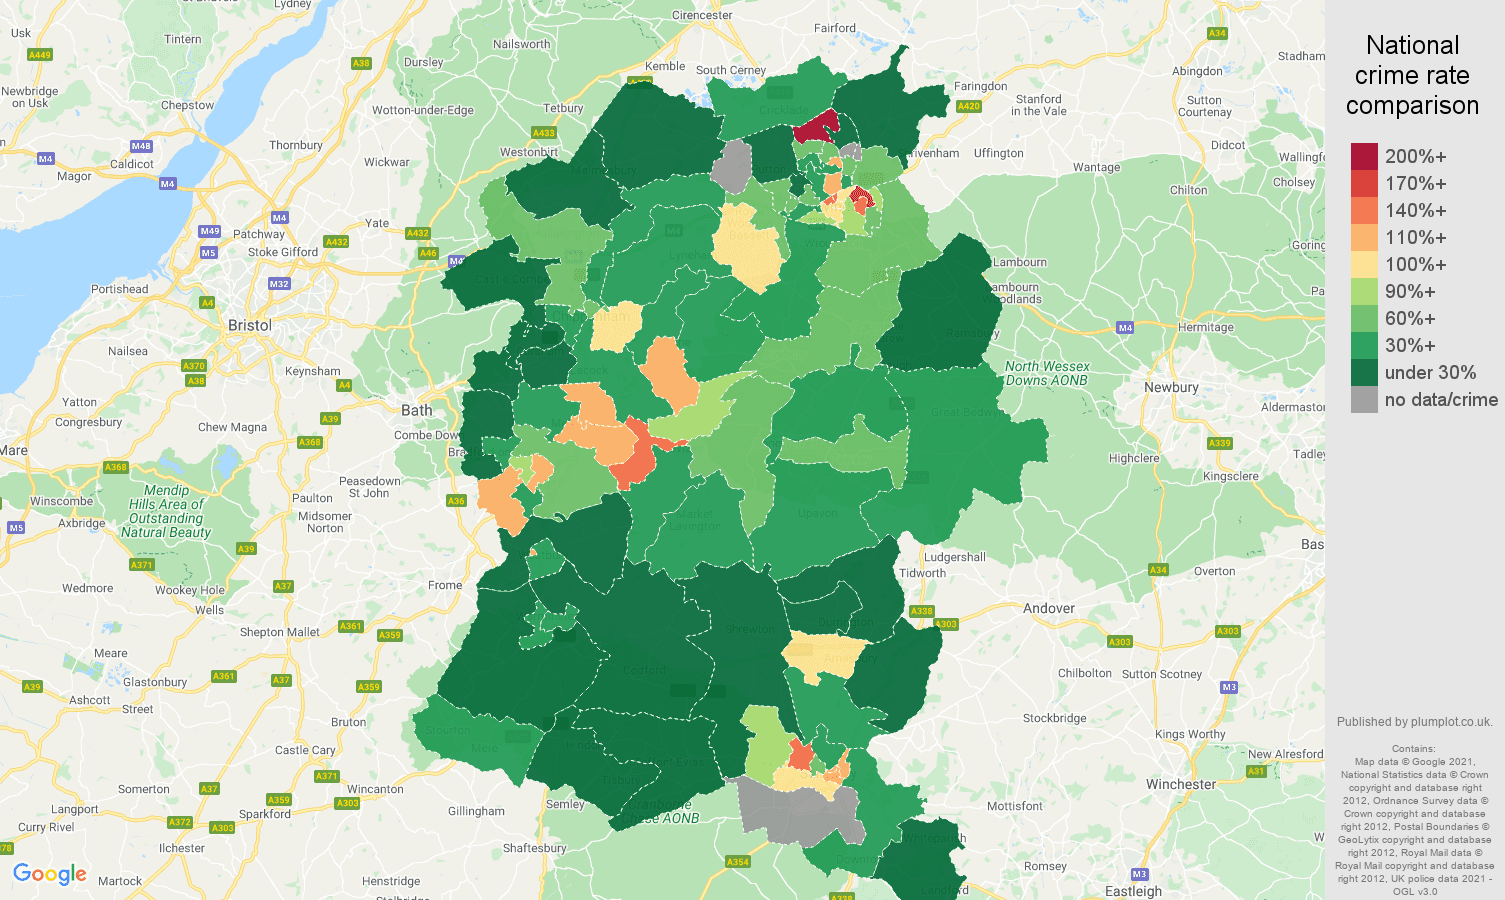 Wiltshire drugs crime rate comparison map